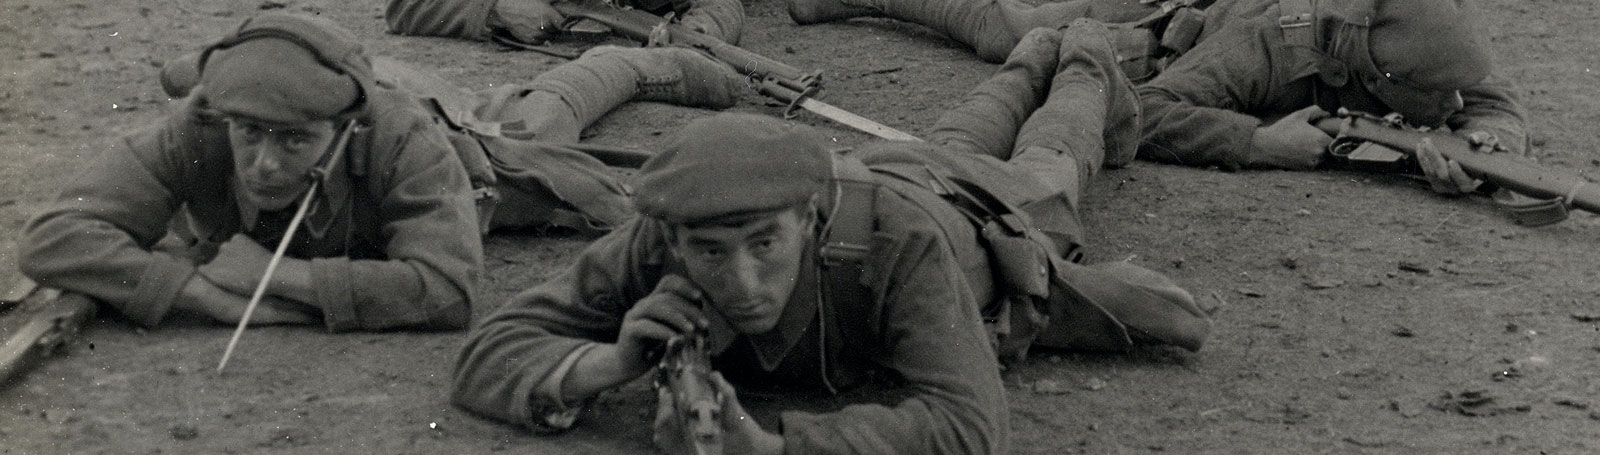 Soldiers laying on floor with rifles